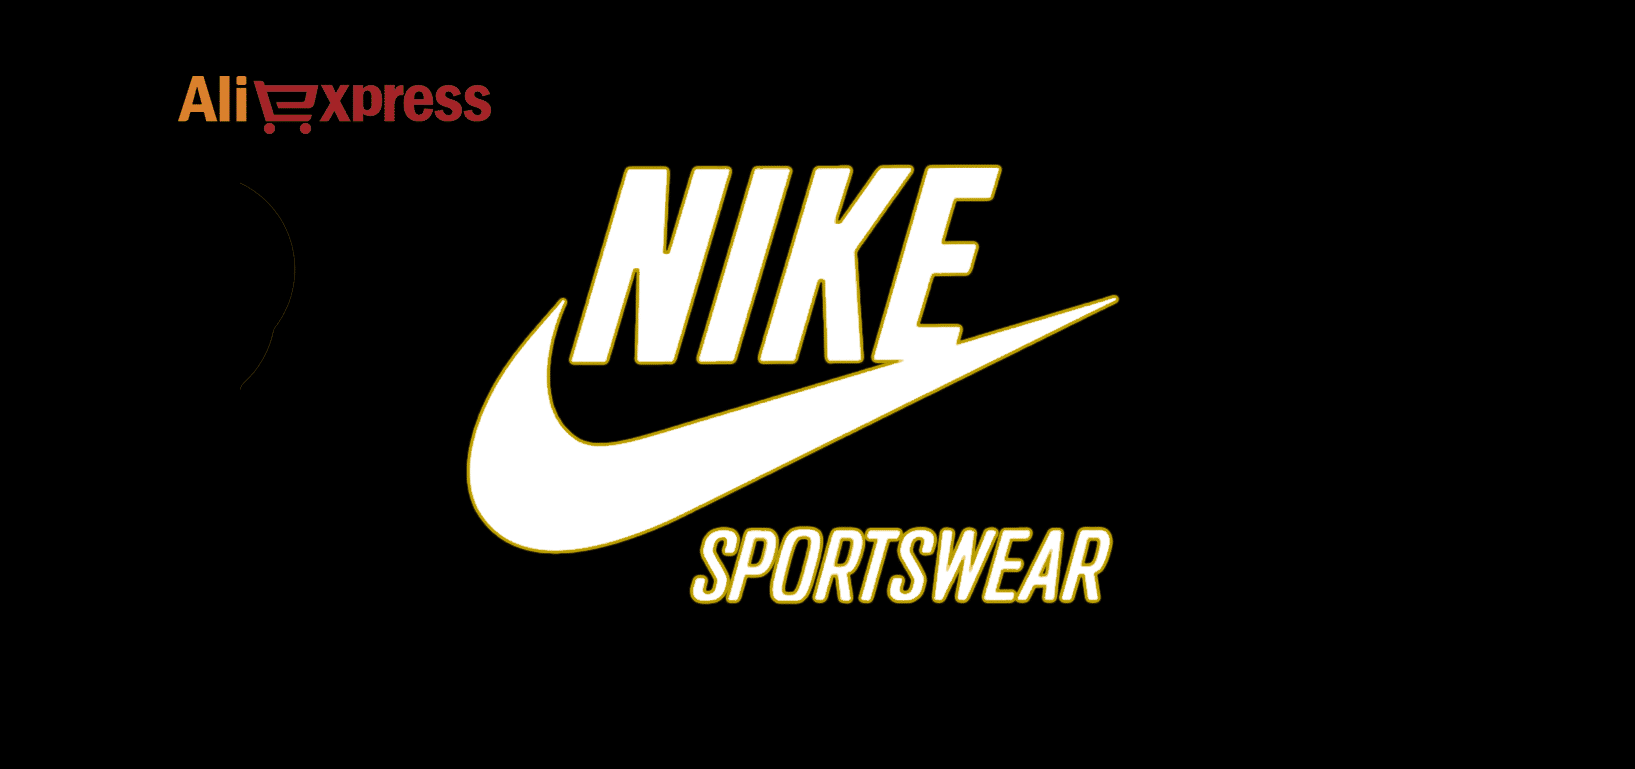 NikeGuide Complet Aliexpress D'achat D'achat 2019 NikeGuide Aliexpress QdChtsr